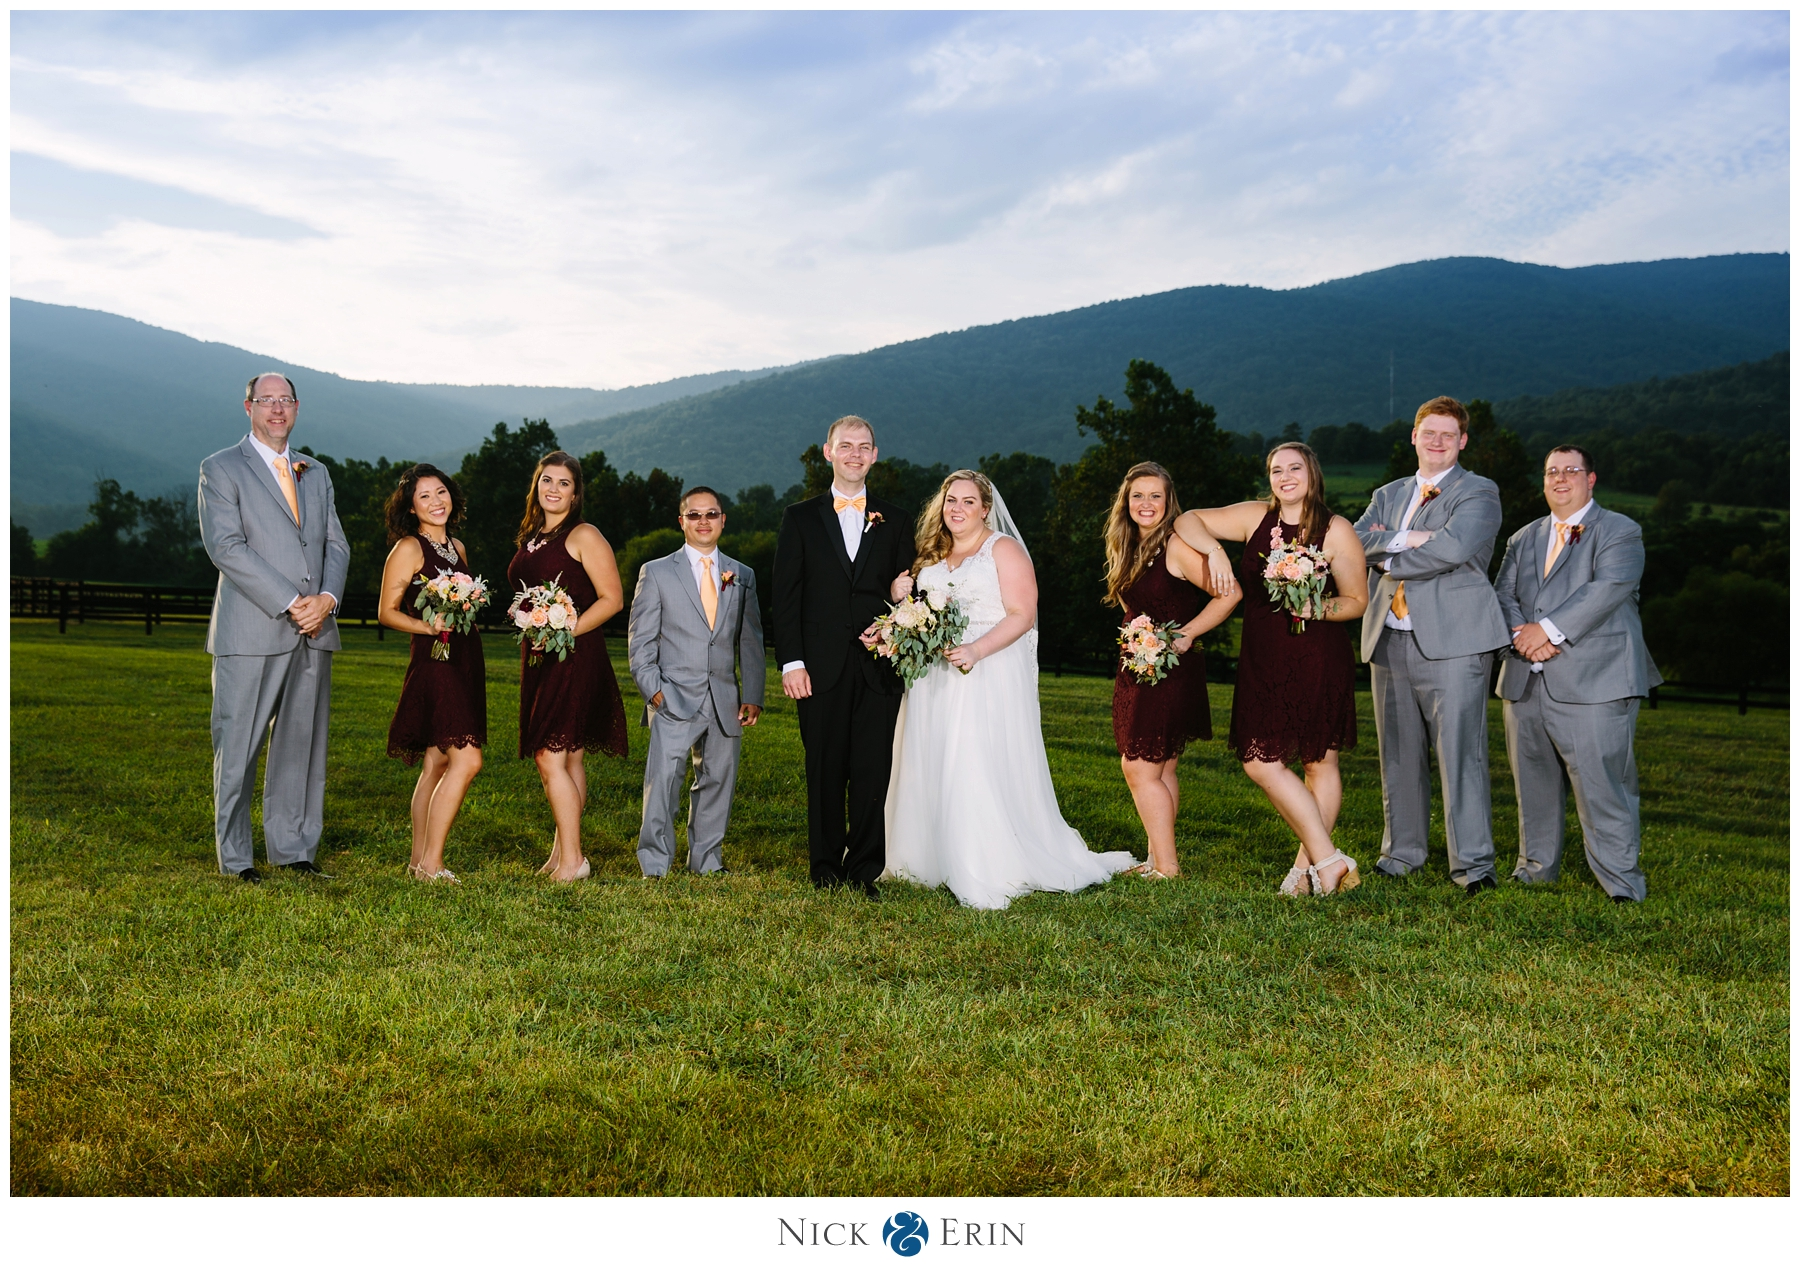 Donner_Photography_Charlottesville Virginia Wedding_Jennifer & Chris_0048